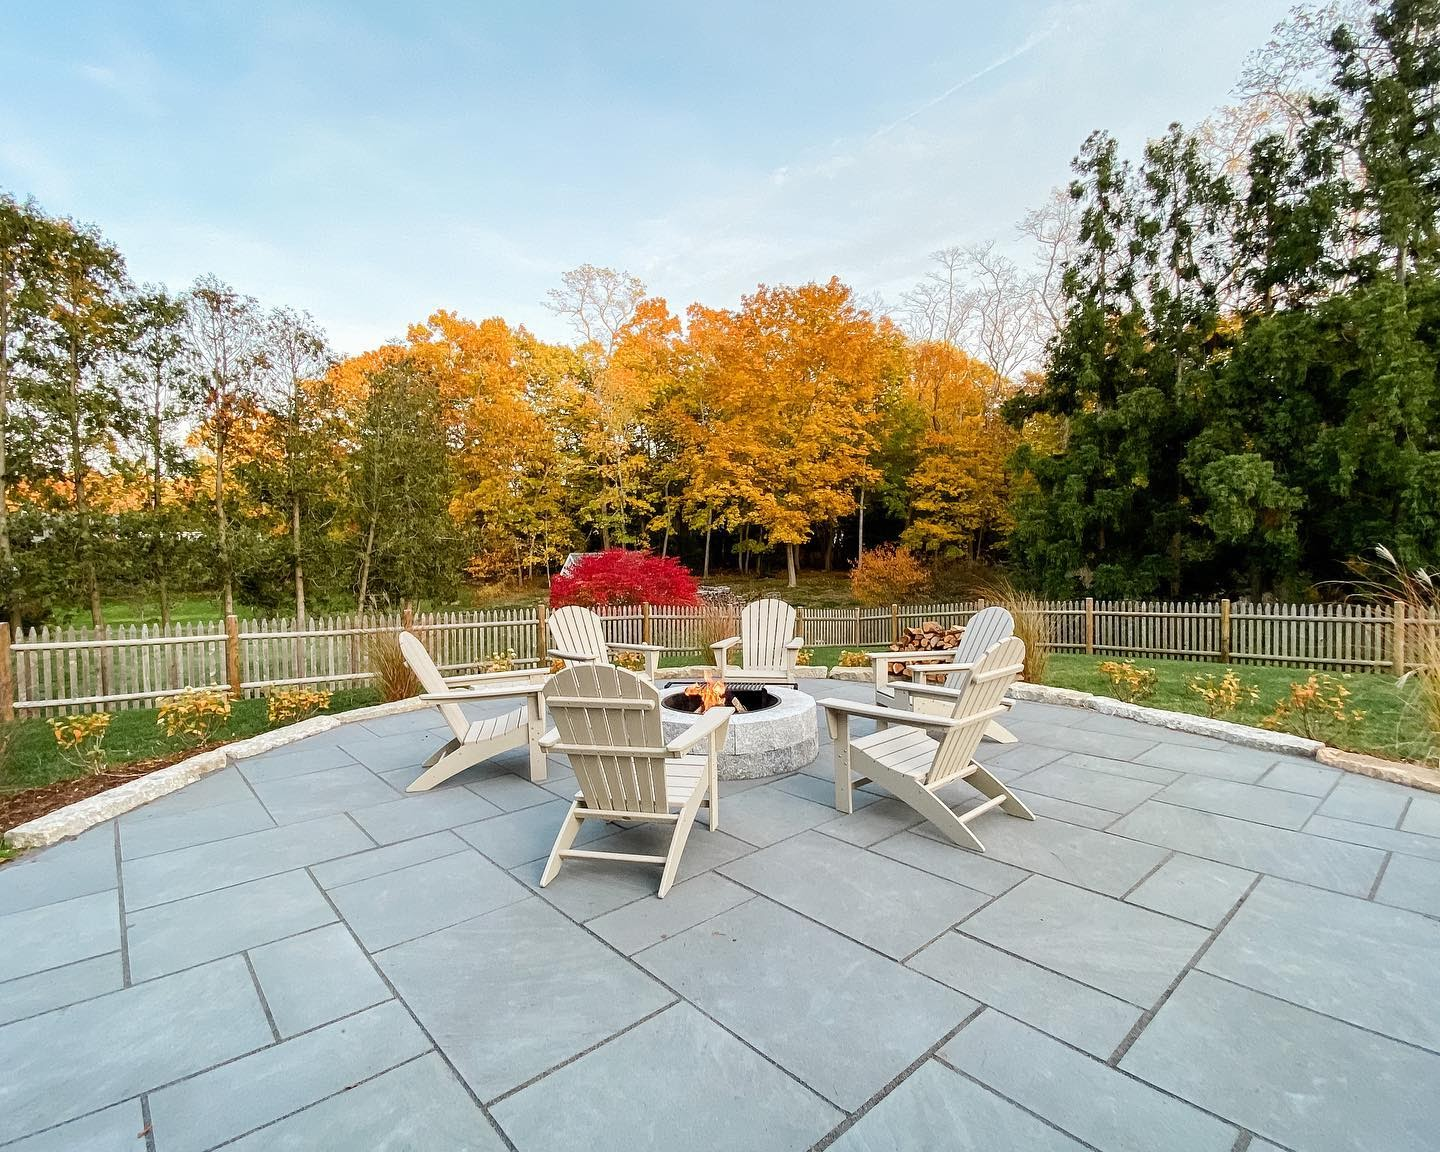 Round Woodbury Gray granite fire pit on patio with Adirondack chairs as fire pit seating gathered around fire pit creating a beautiful entertaining area for this family's outdoor living space